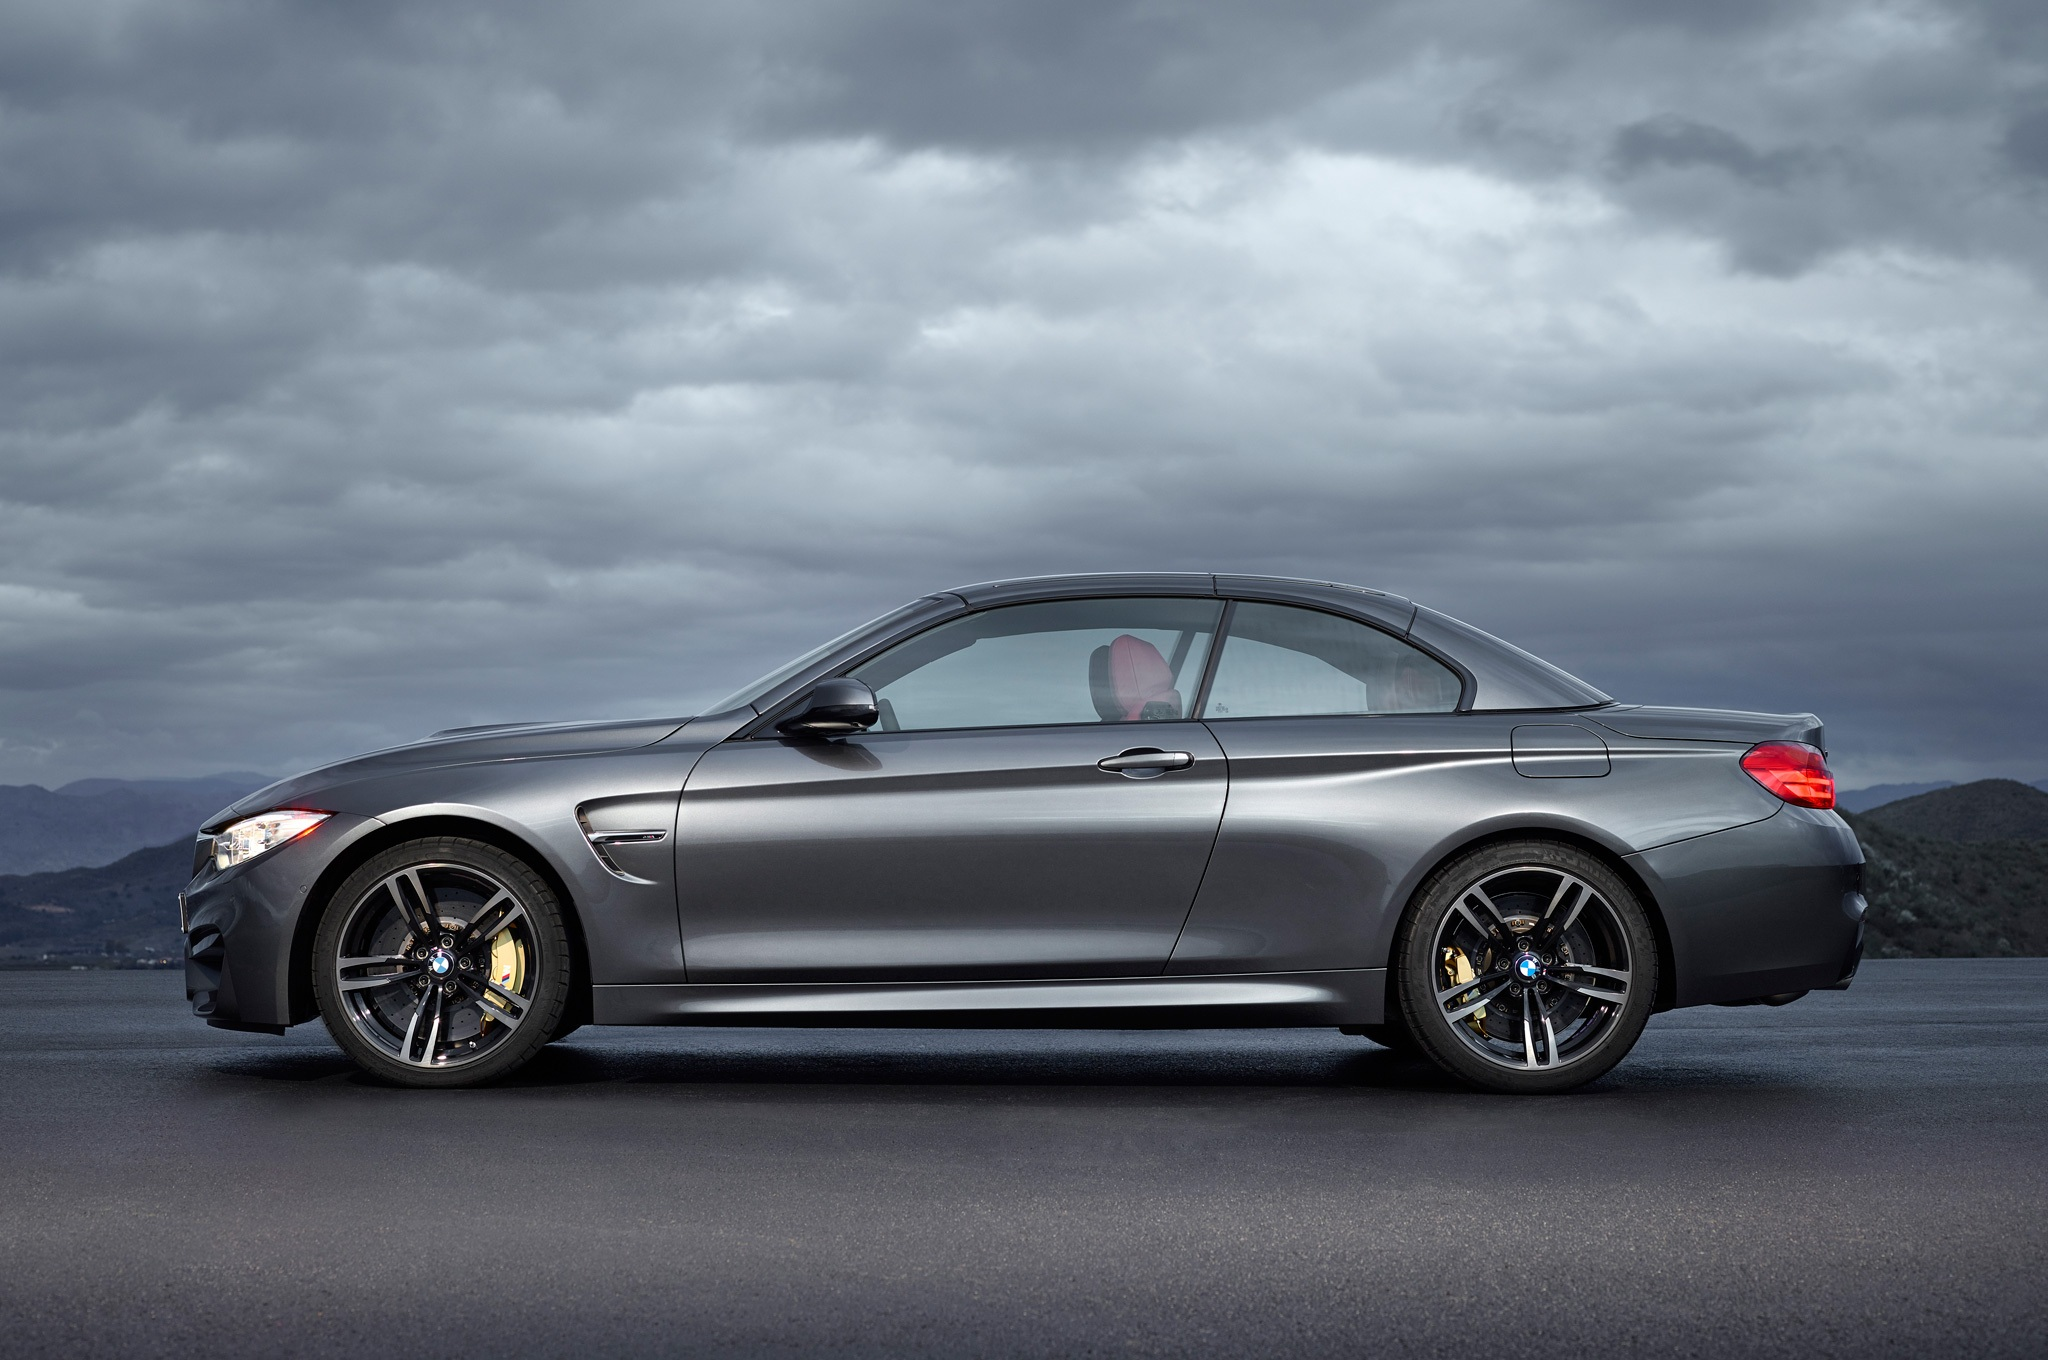 2015 Bmw M4 Convertible Side Design Top Up (Photo 46 of 50)